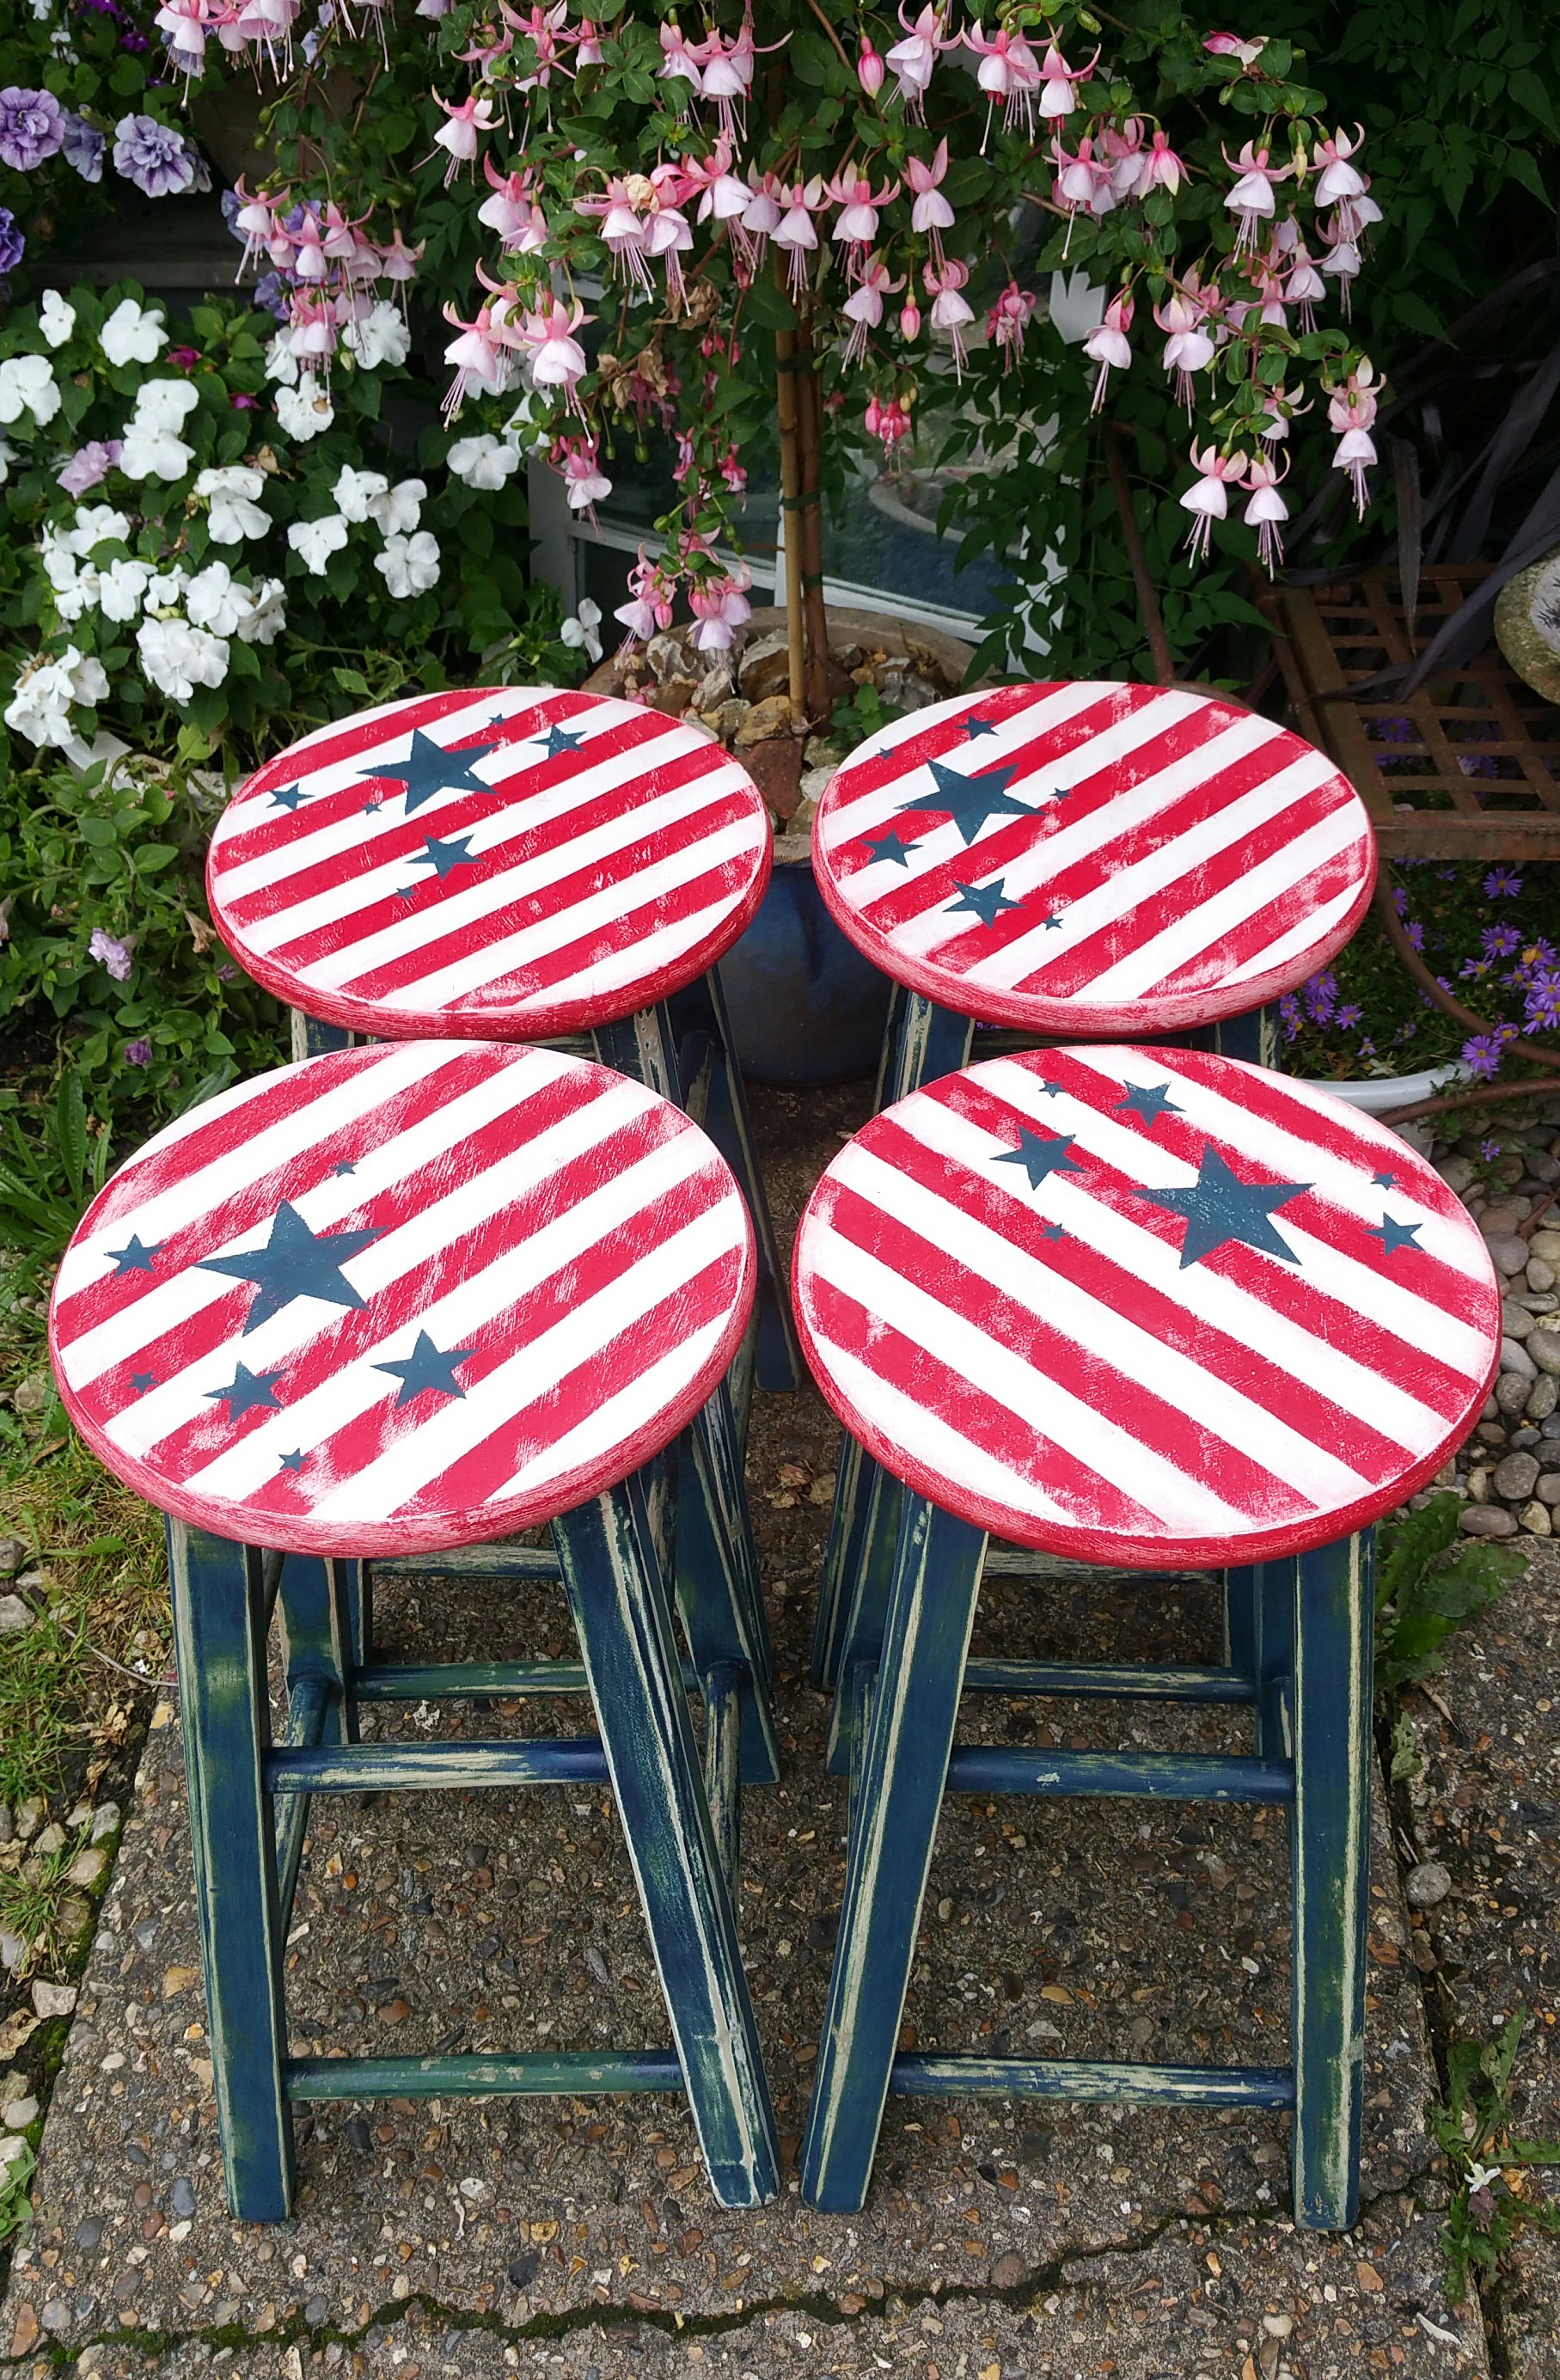 The Star and Stripe Stools